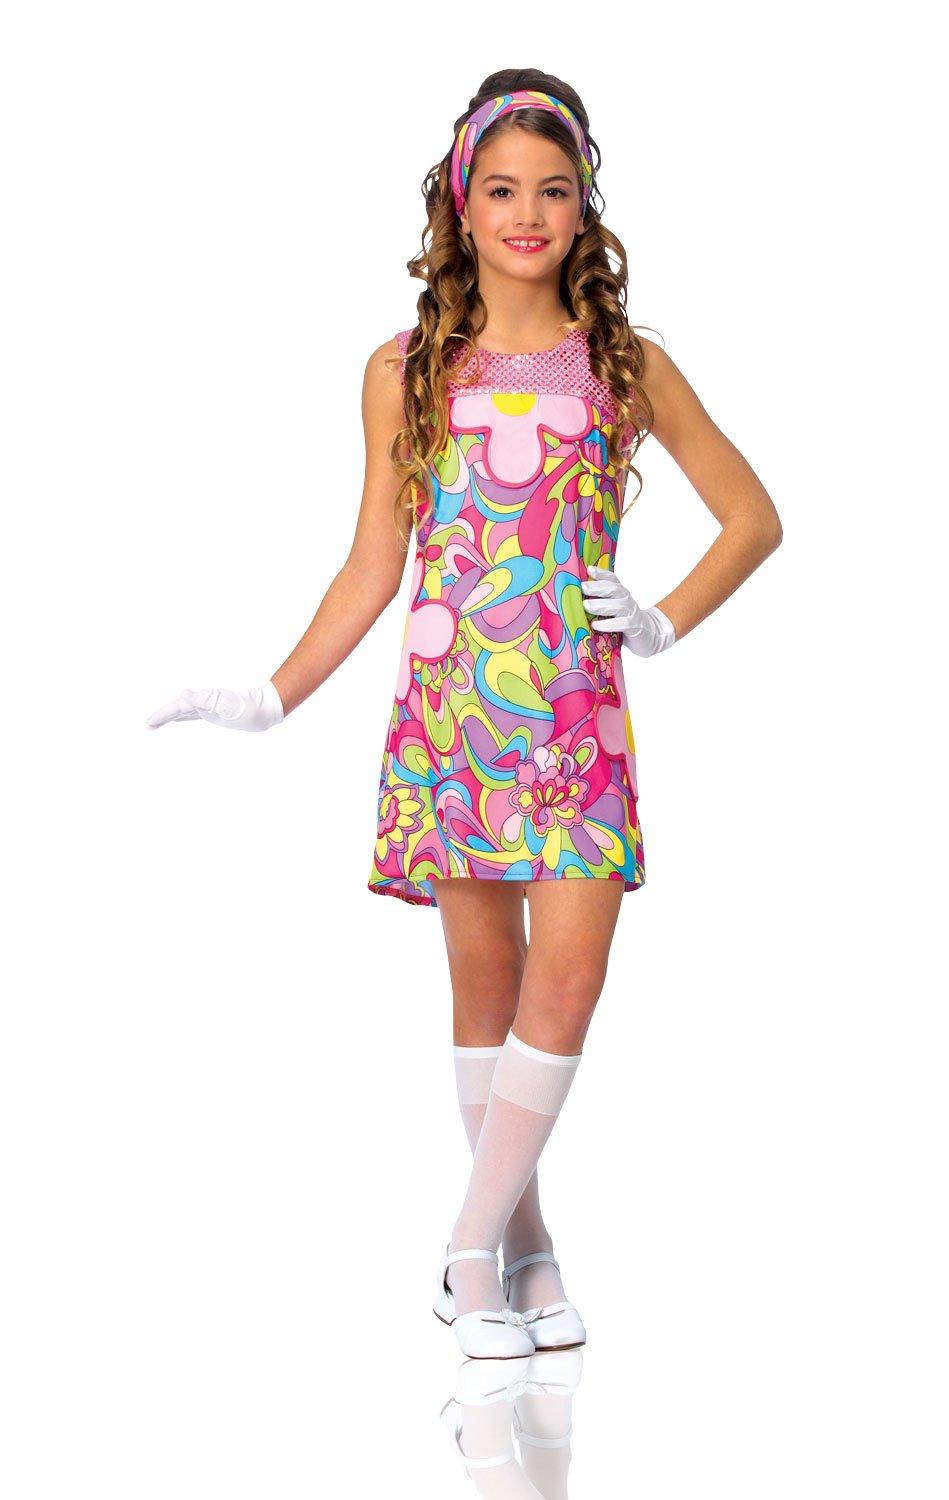 ce6fdefbab55 Amazon.com  Kids Girls Costume 60s 70s Groovy Girl Dress Outfit M ...